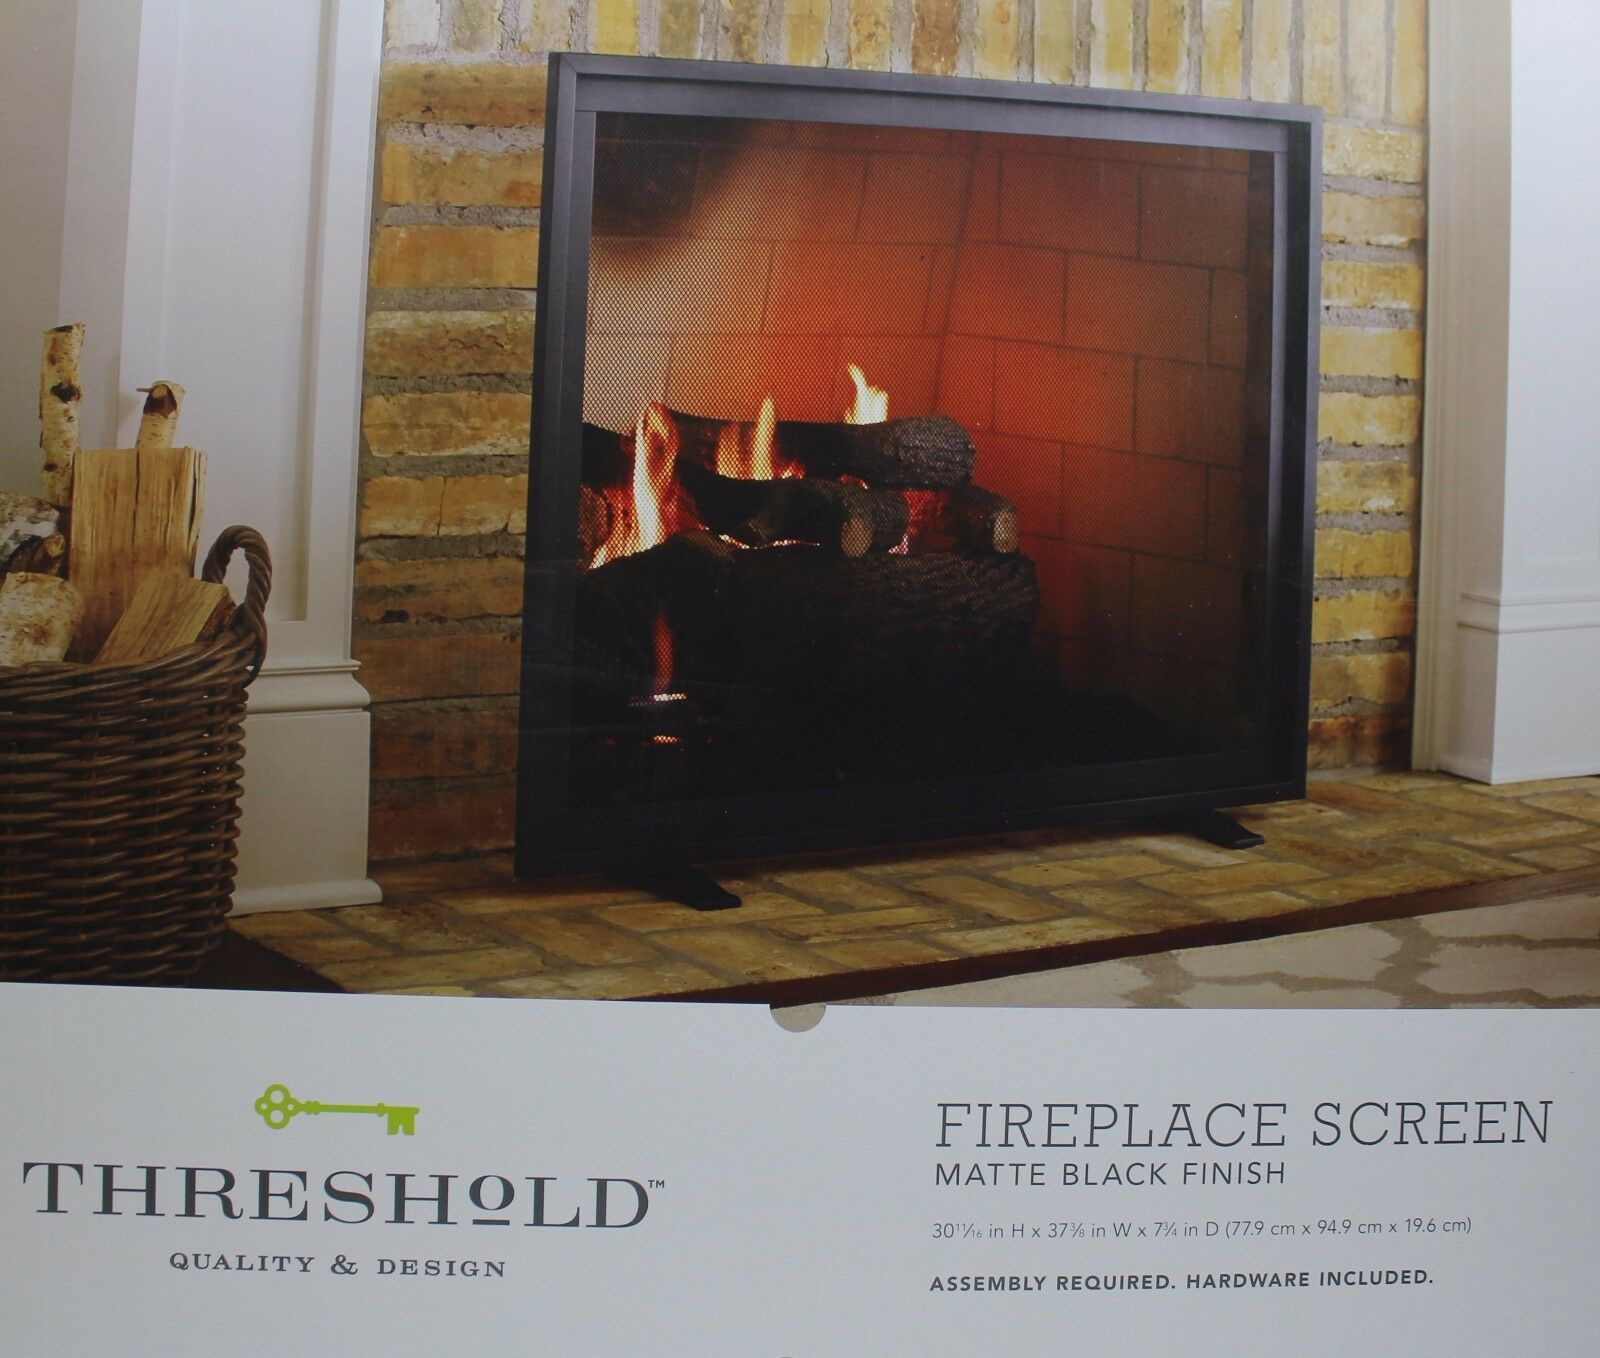 15642057 threshold flat panel fireplace screen matte black finish